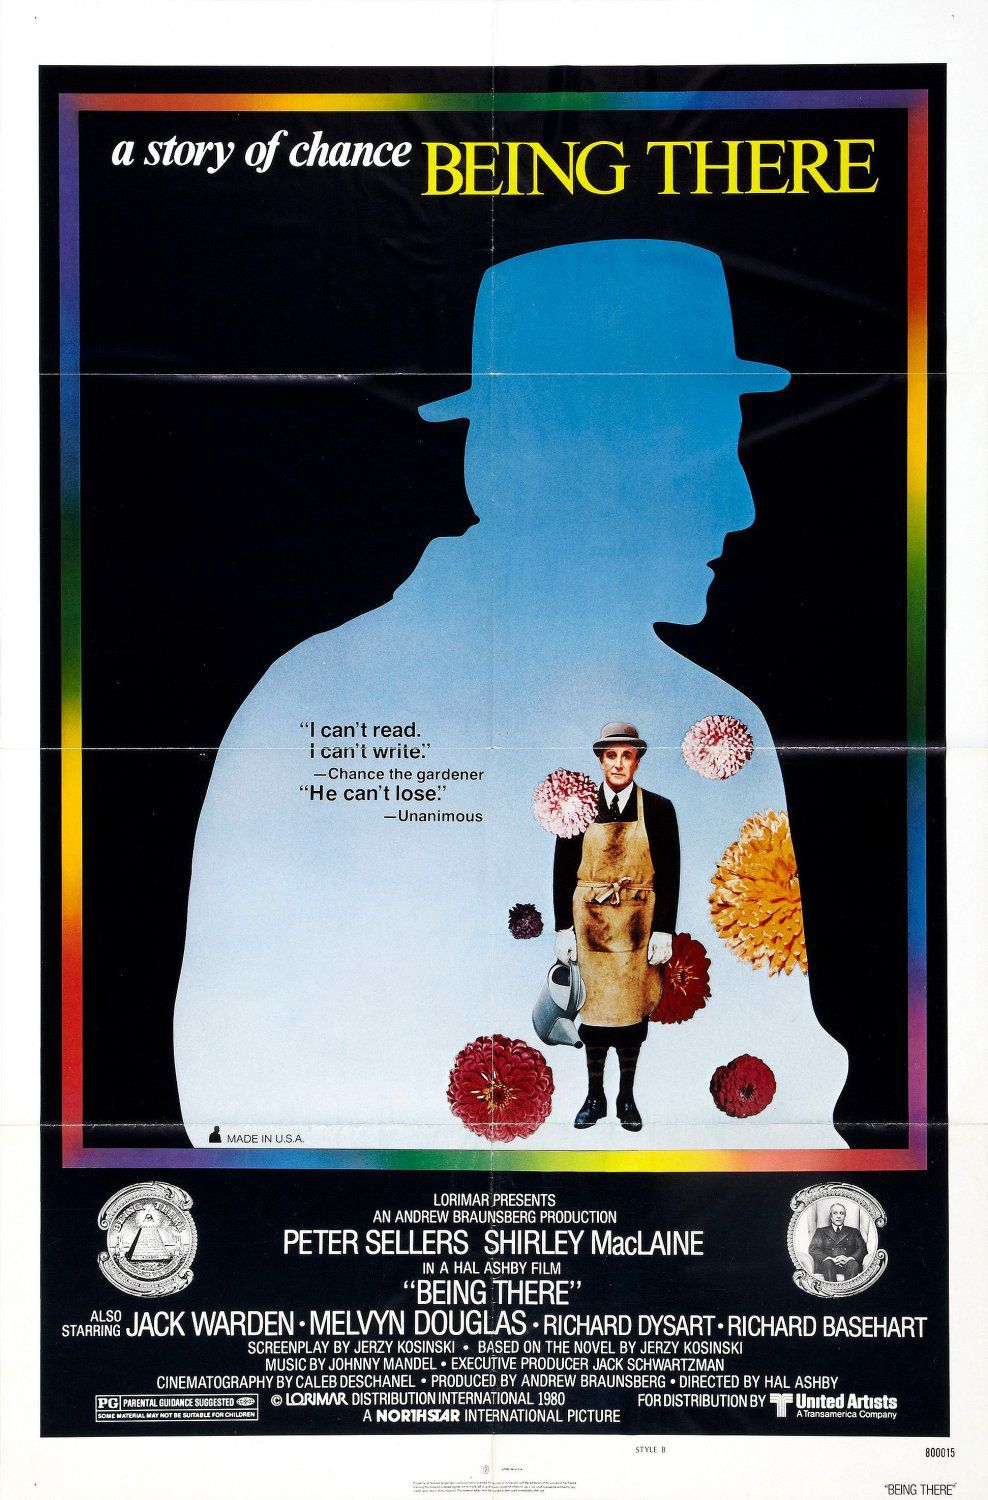 Being There - Oltre il Giardino (1979) - Cast: Peter Sellers, Shirley MacLaine, Melvyn Douglas, Jack Warden - film poster